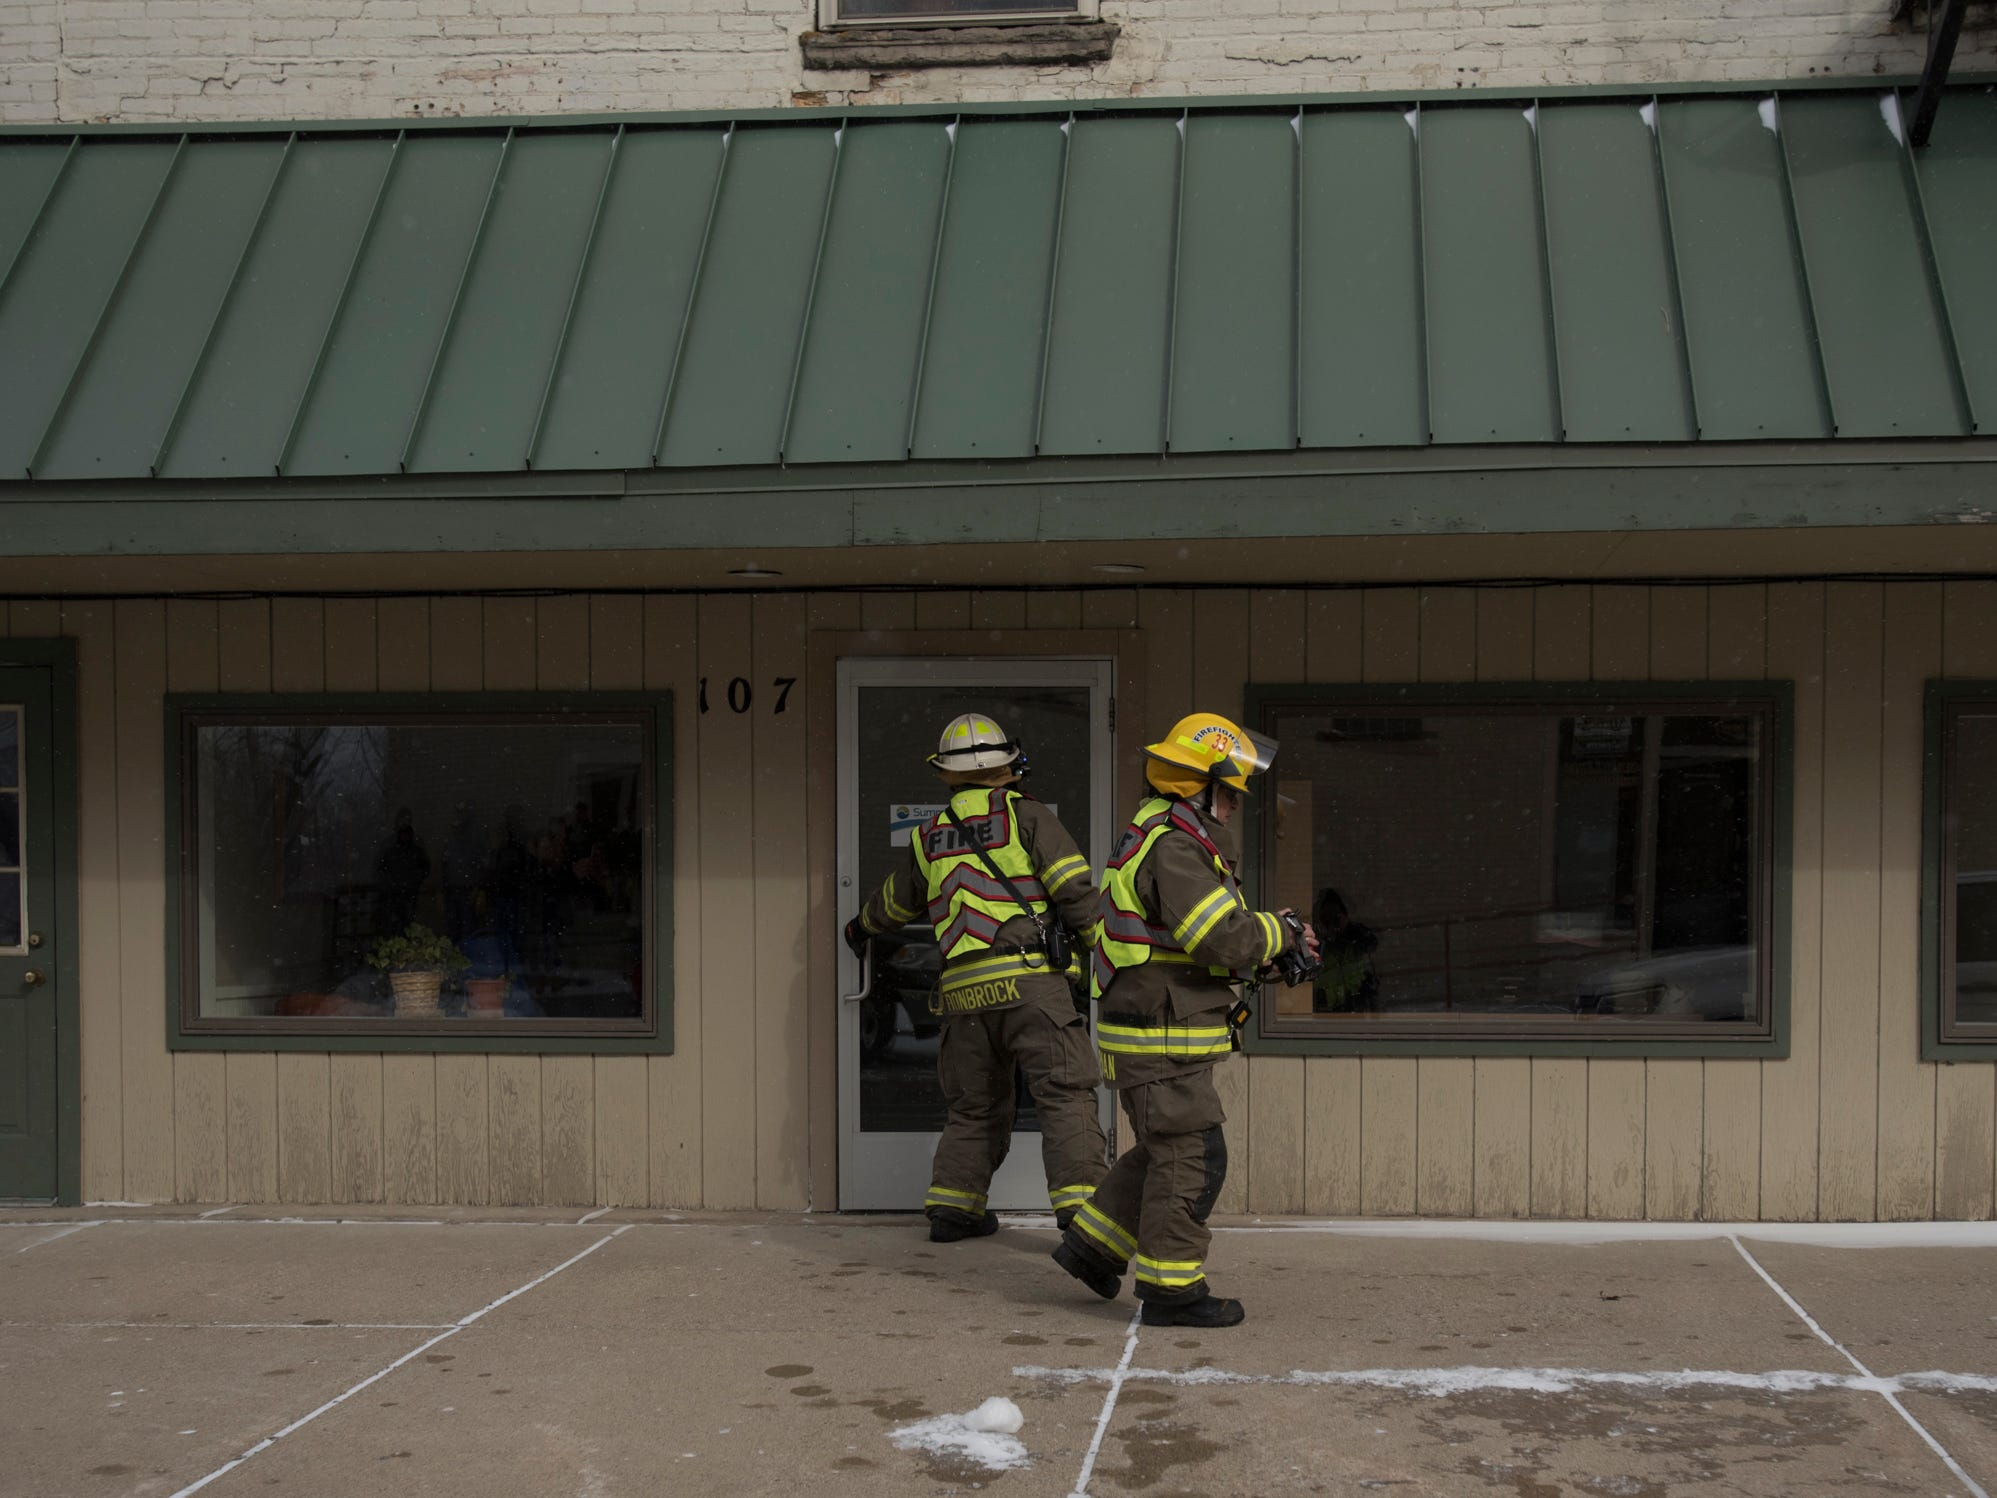 Firefighters go door-to-door at businesses and residences in downtown Portland, Michigan, near Kent St. and E. Grand River evacuating people as smoke was reported in a building along Kent St.  [Matthew Dae Smith/Lansing State Journal]